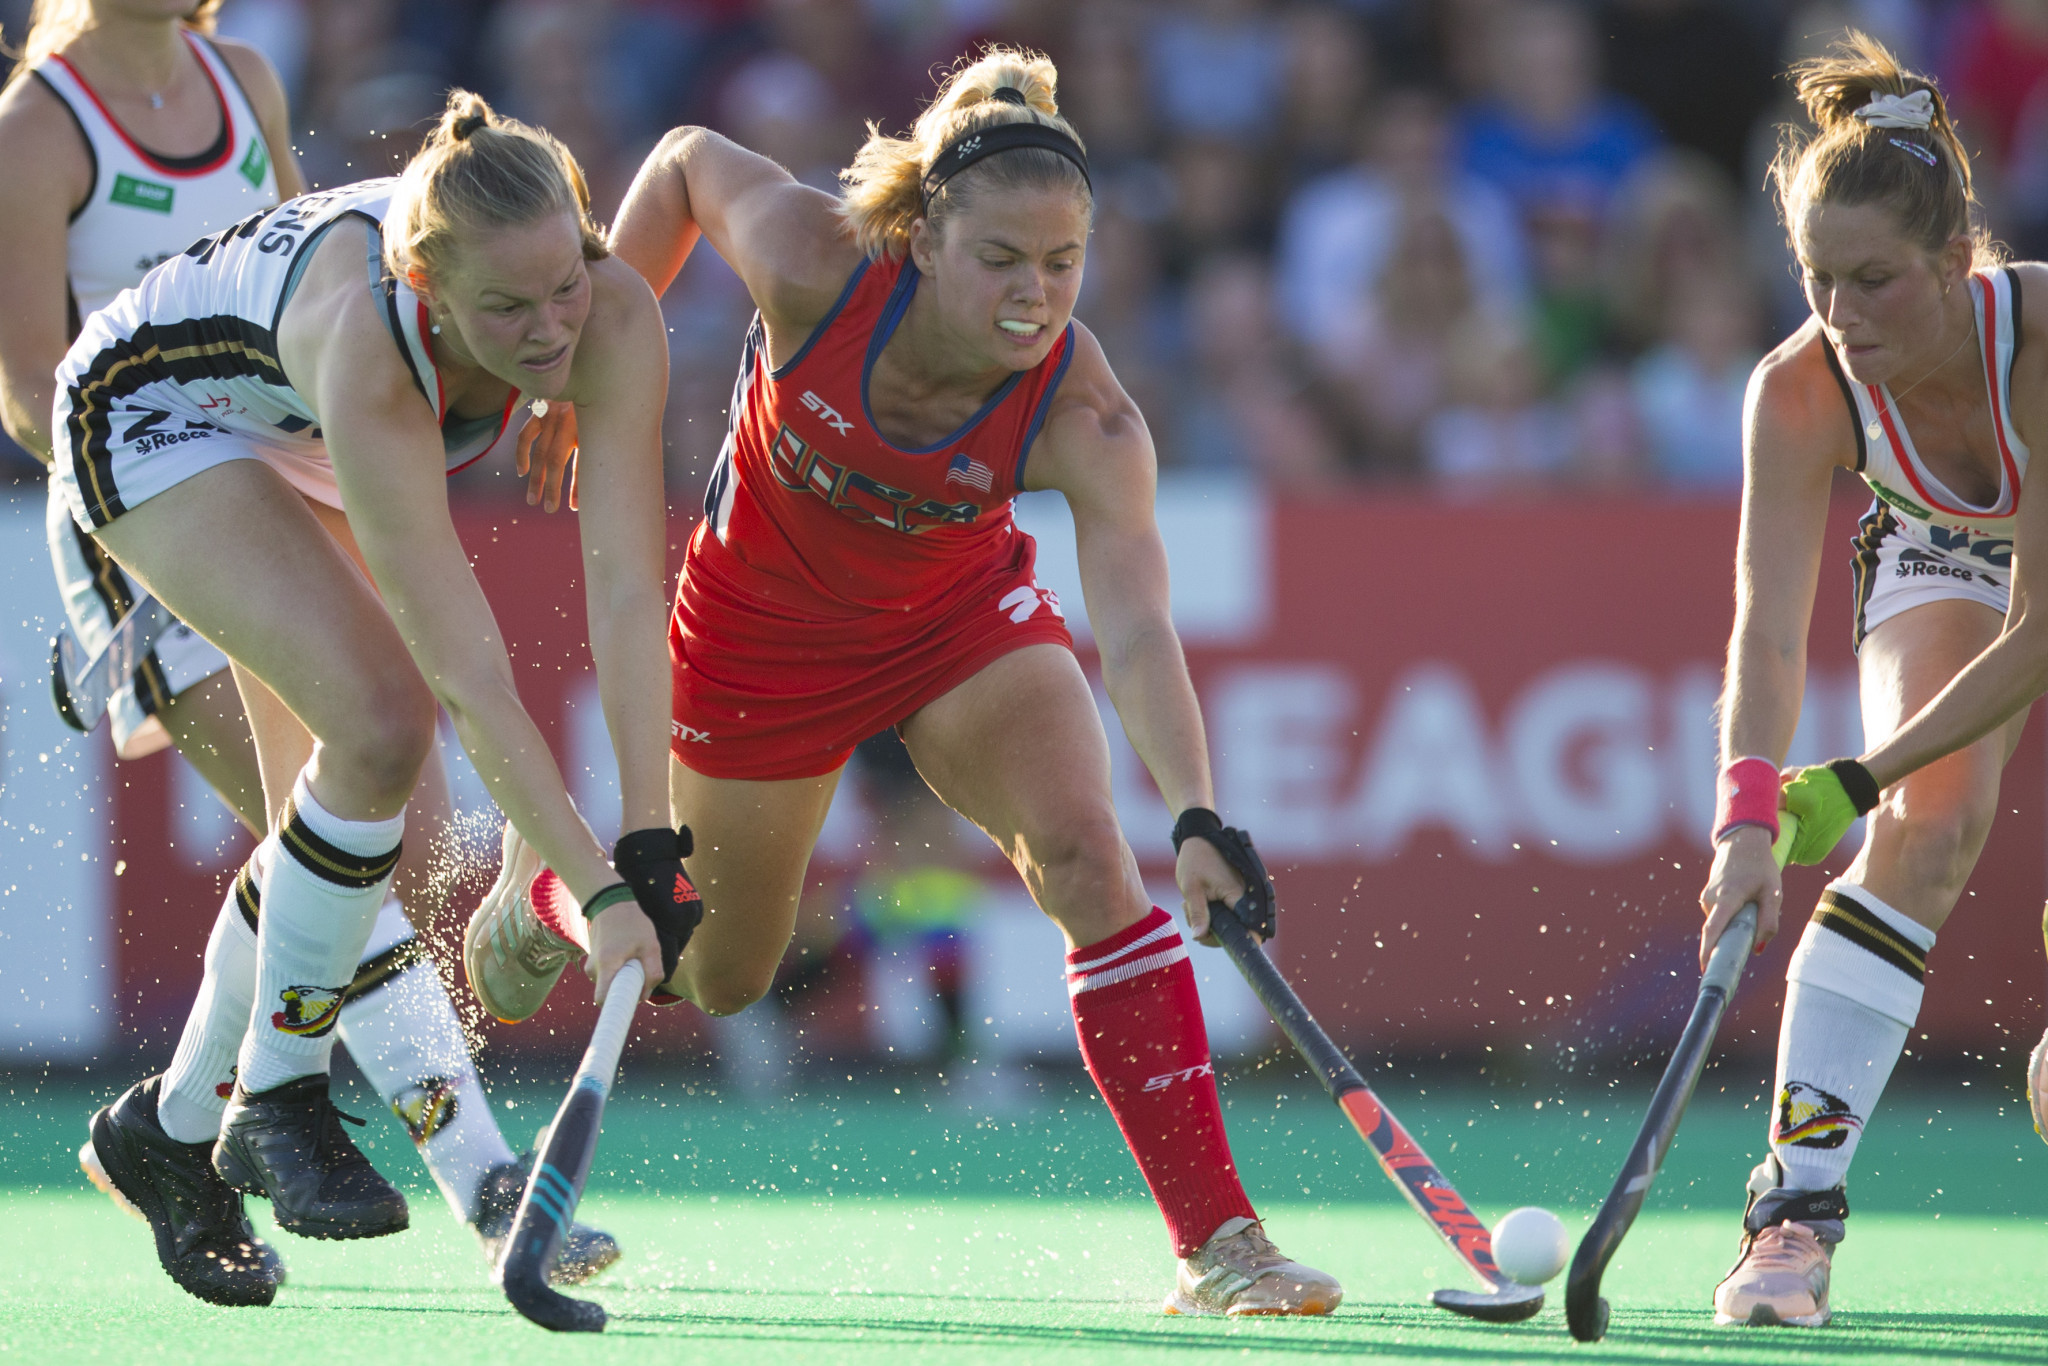 Kathleen Sharkey will look to help the United States win a third straight women's hockey gold ©Getty Images